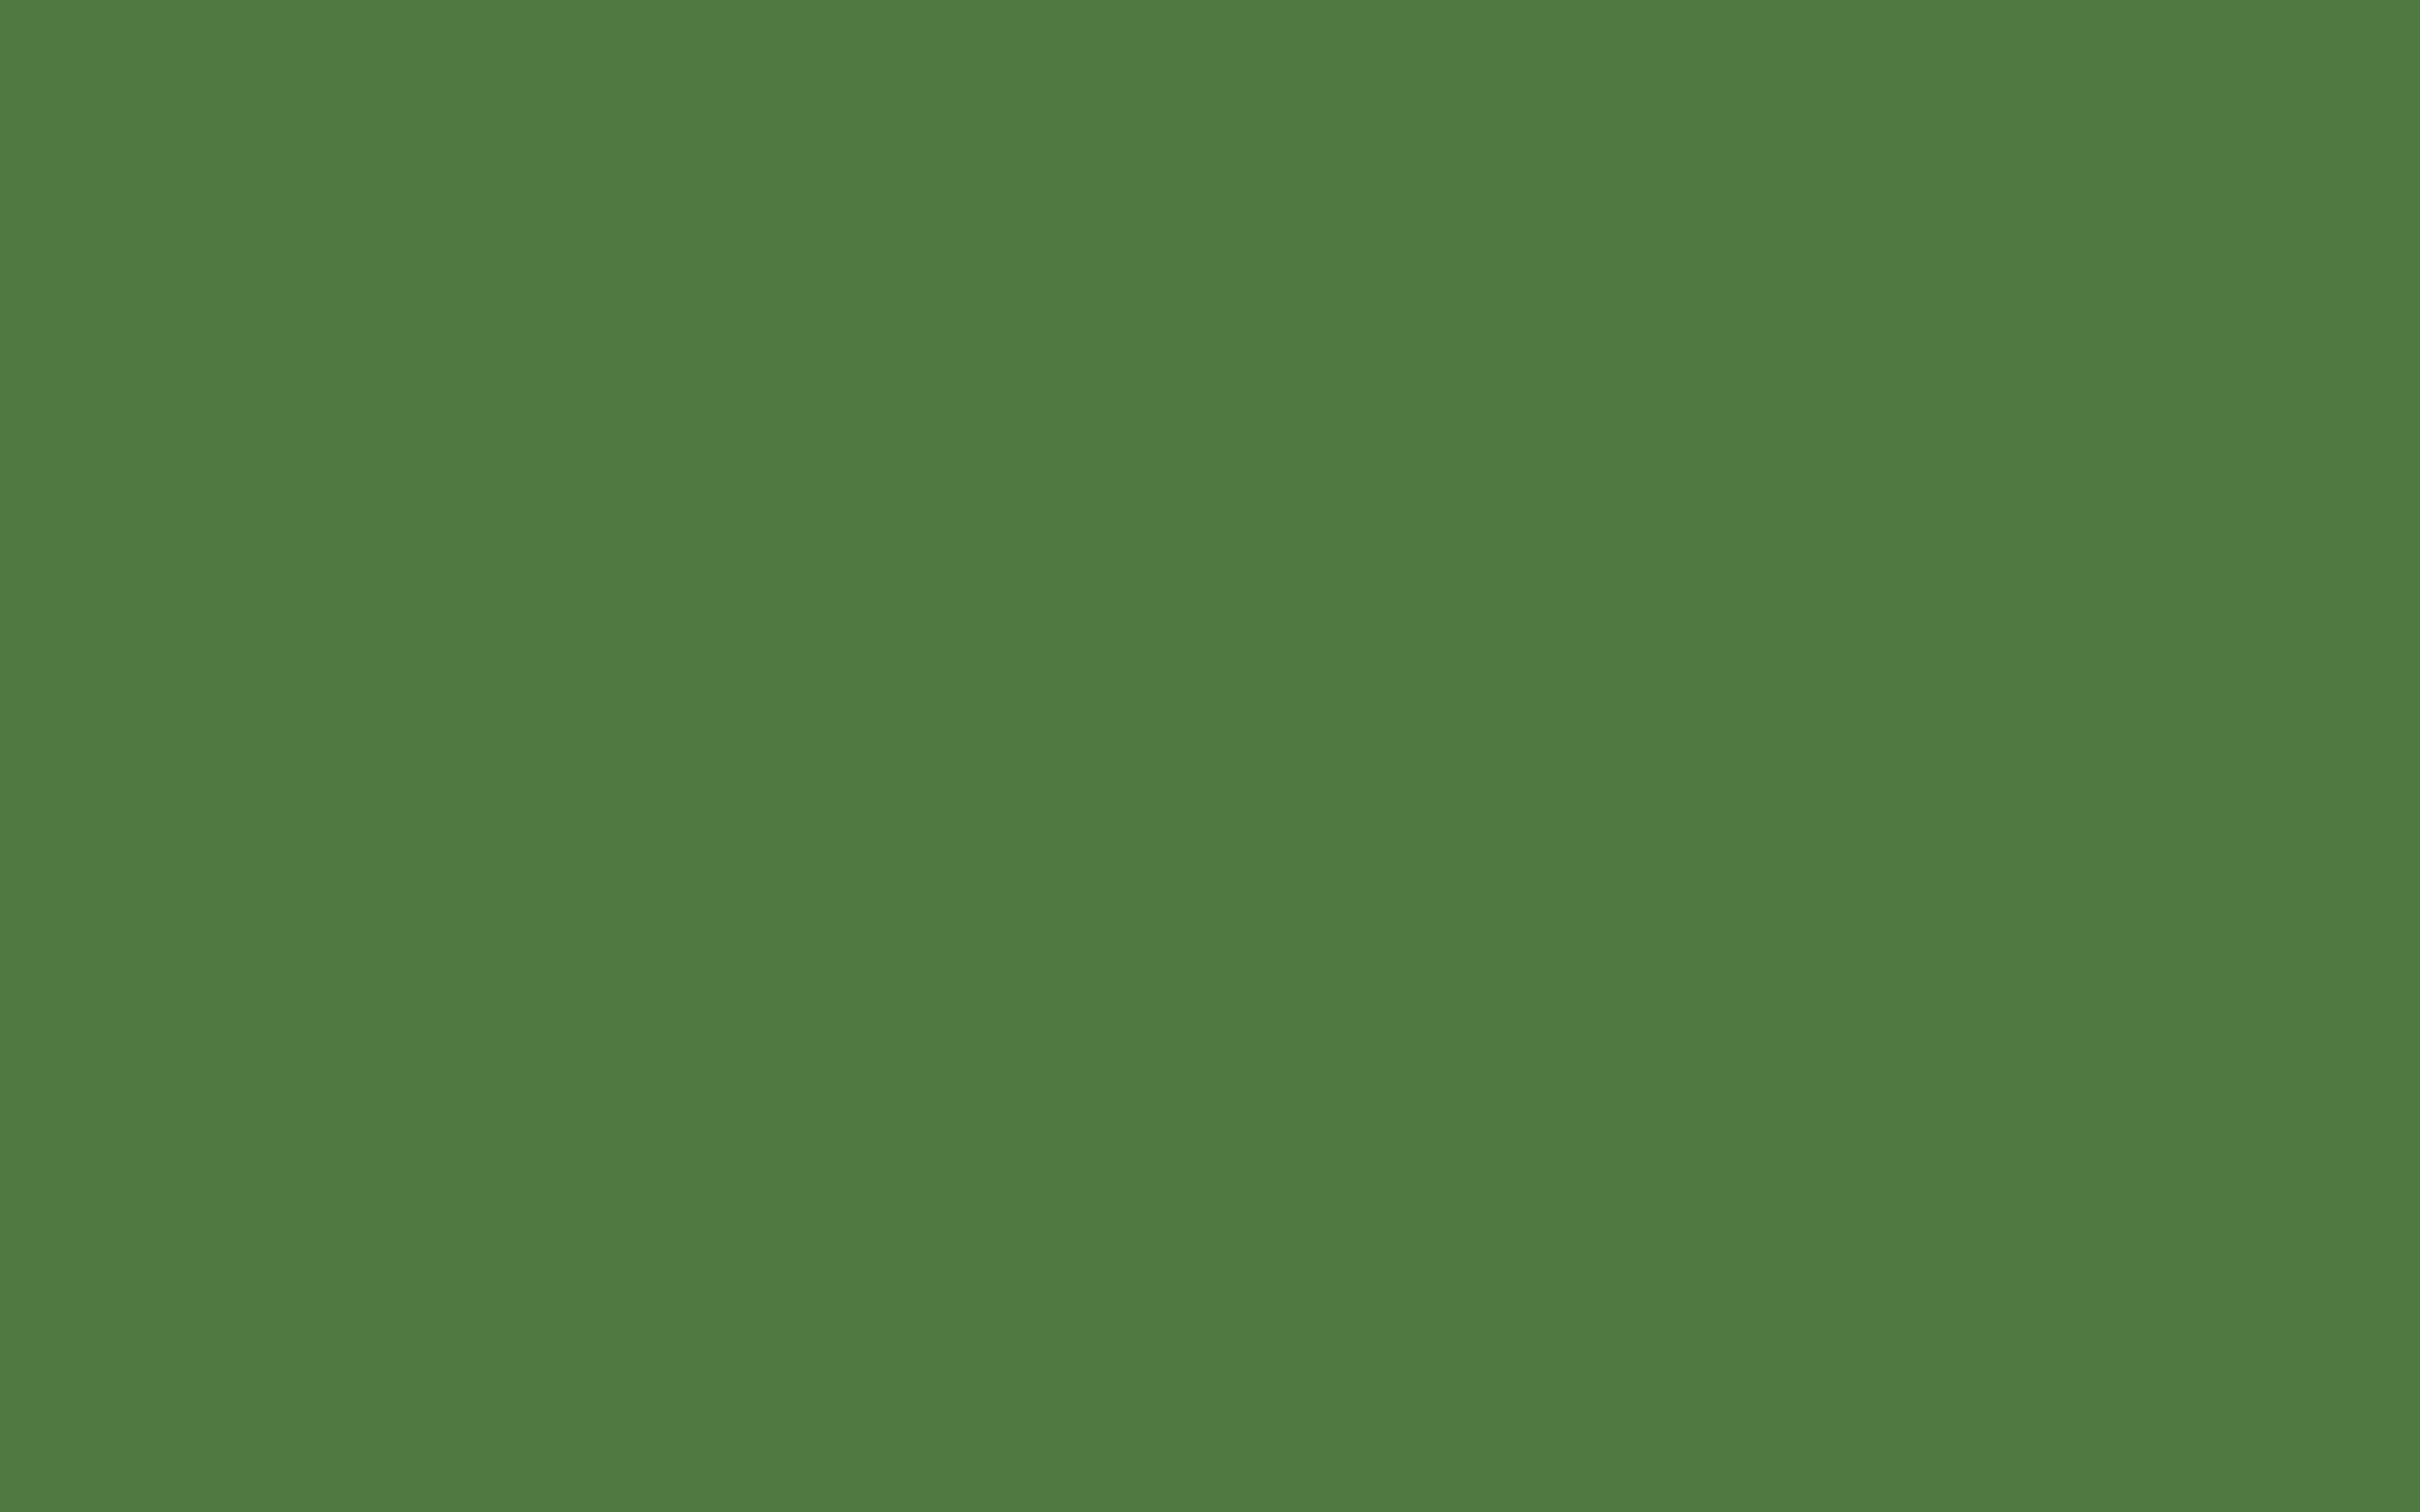 2560x1600 Fern Green Solid Color Background